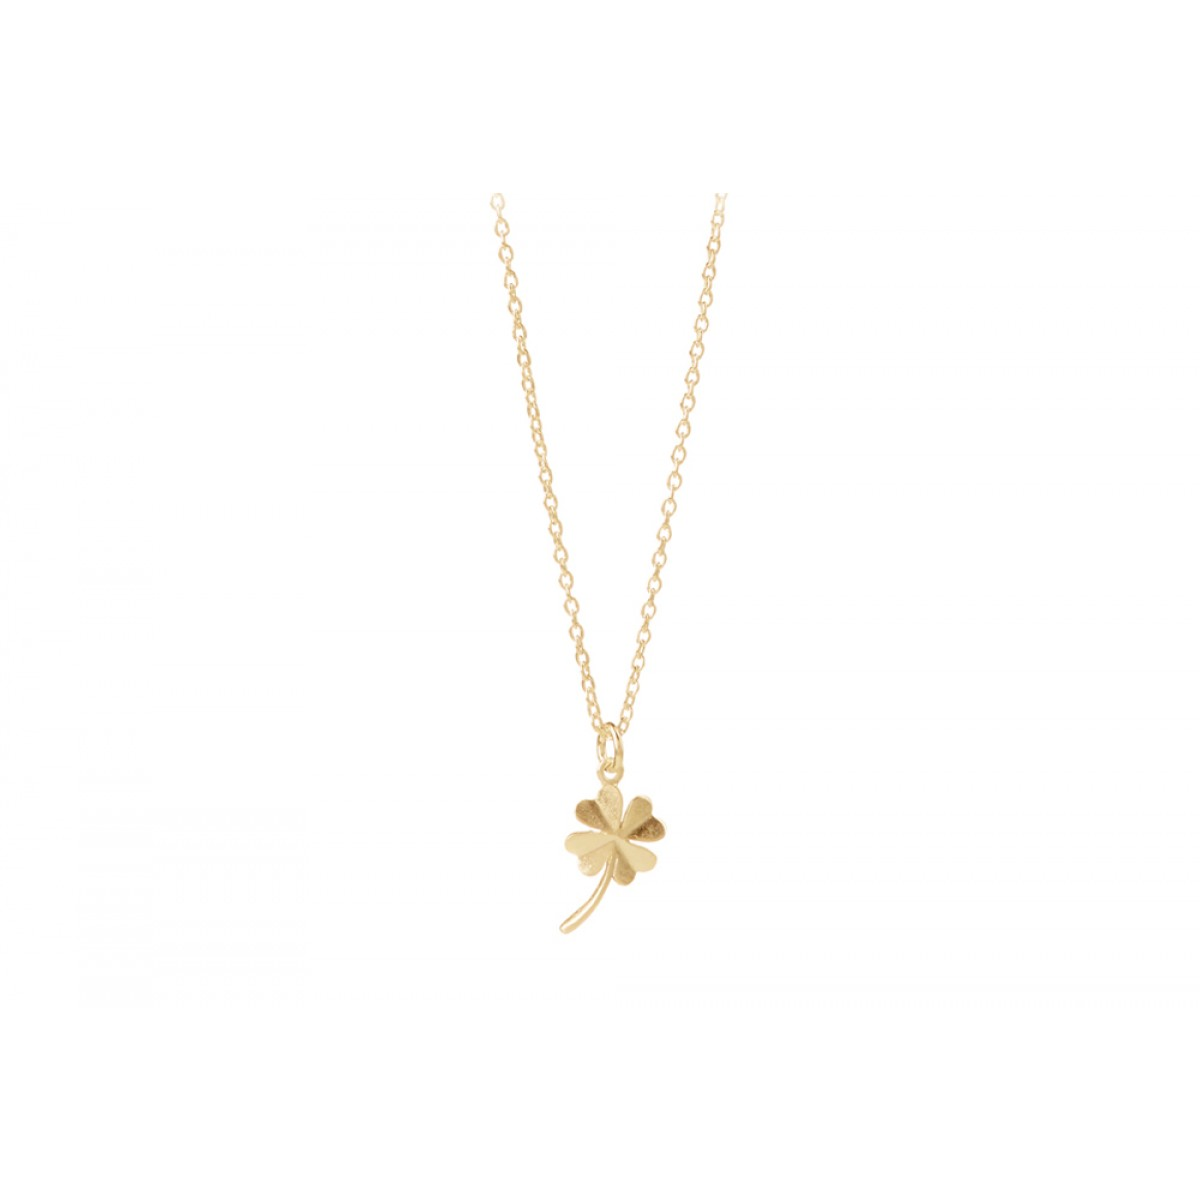 Pernille Corydon N320 Gold Clover Necklace-31